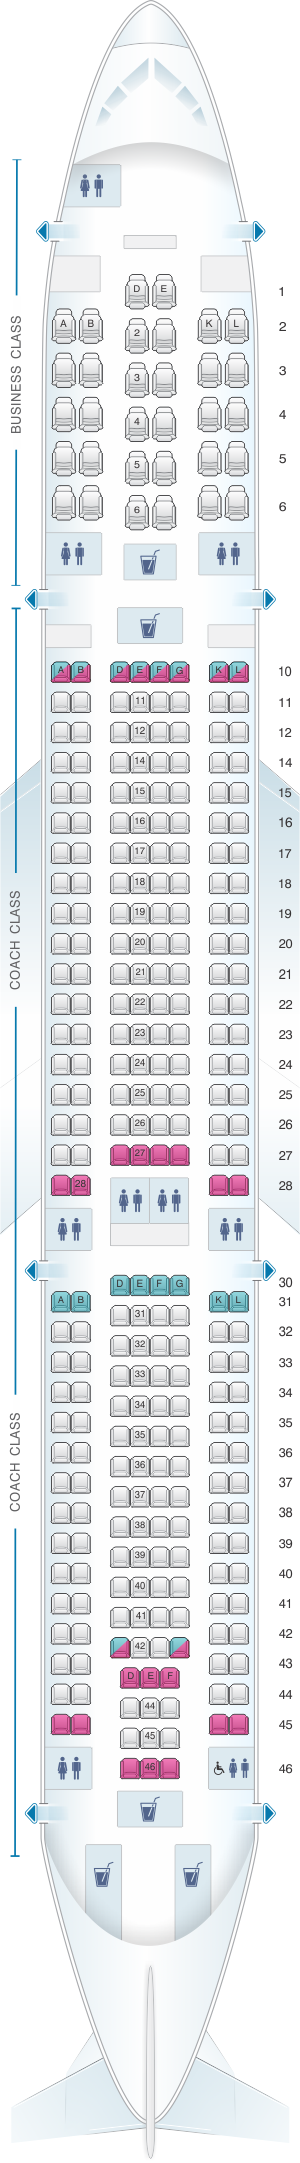 Seat map for Air Tahiti Nui Airbus A340 300